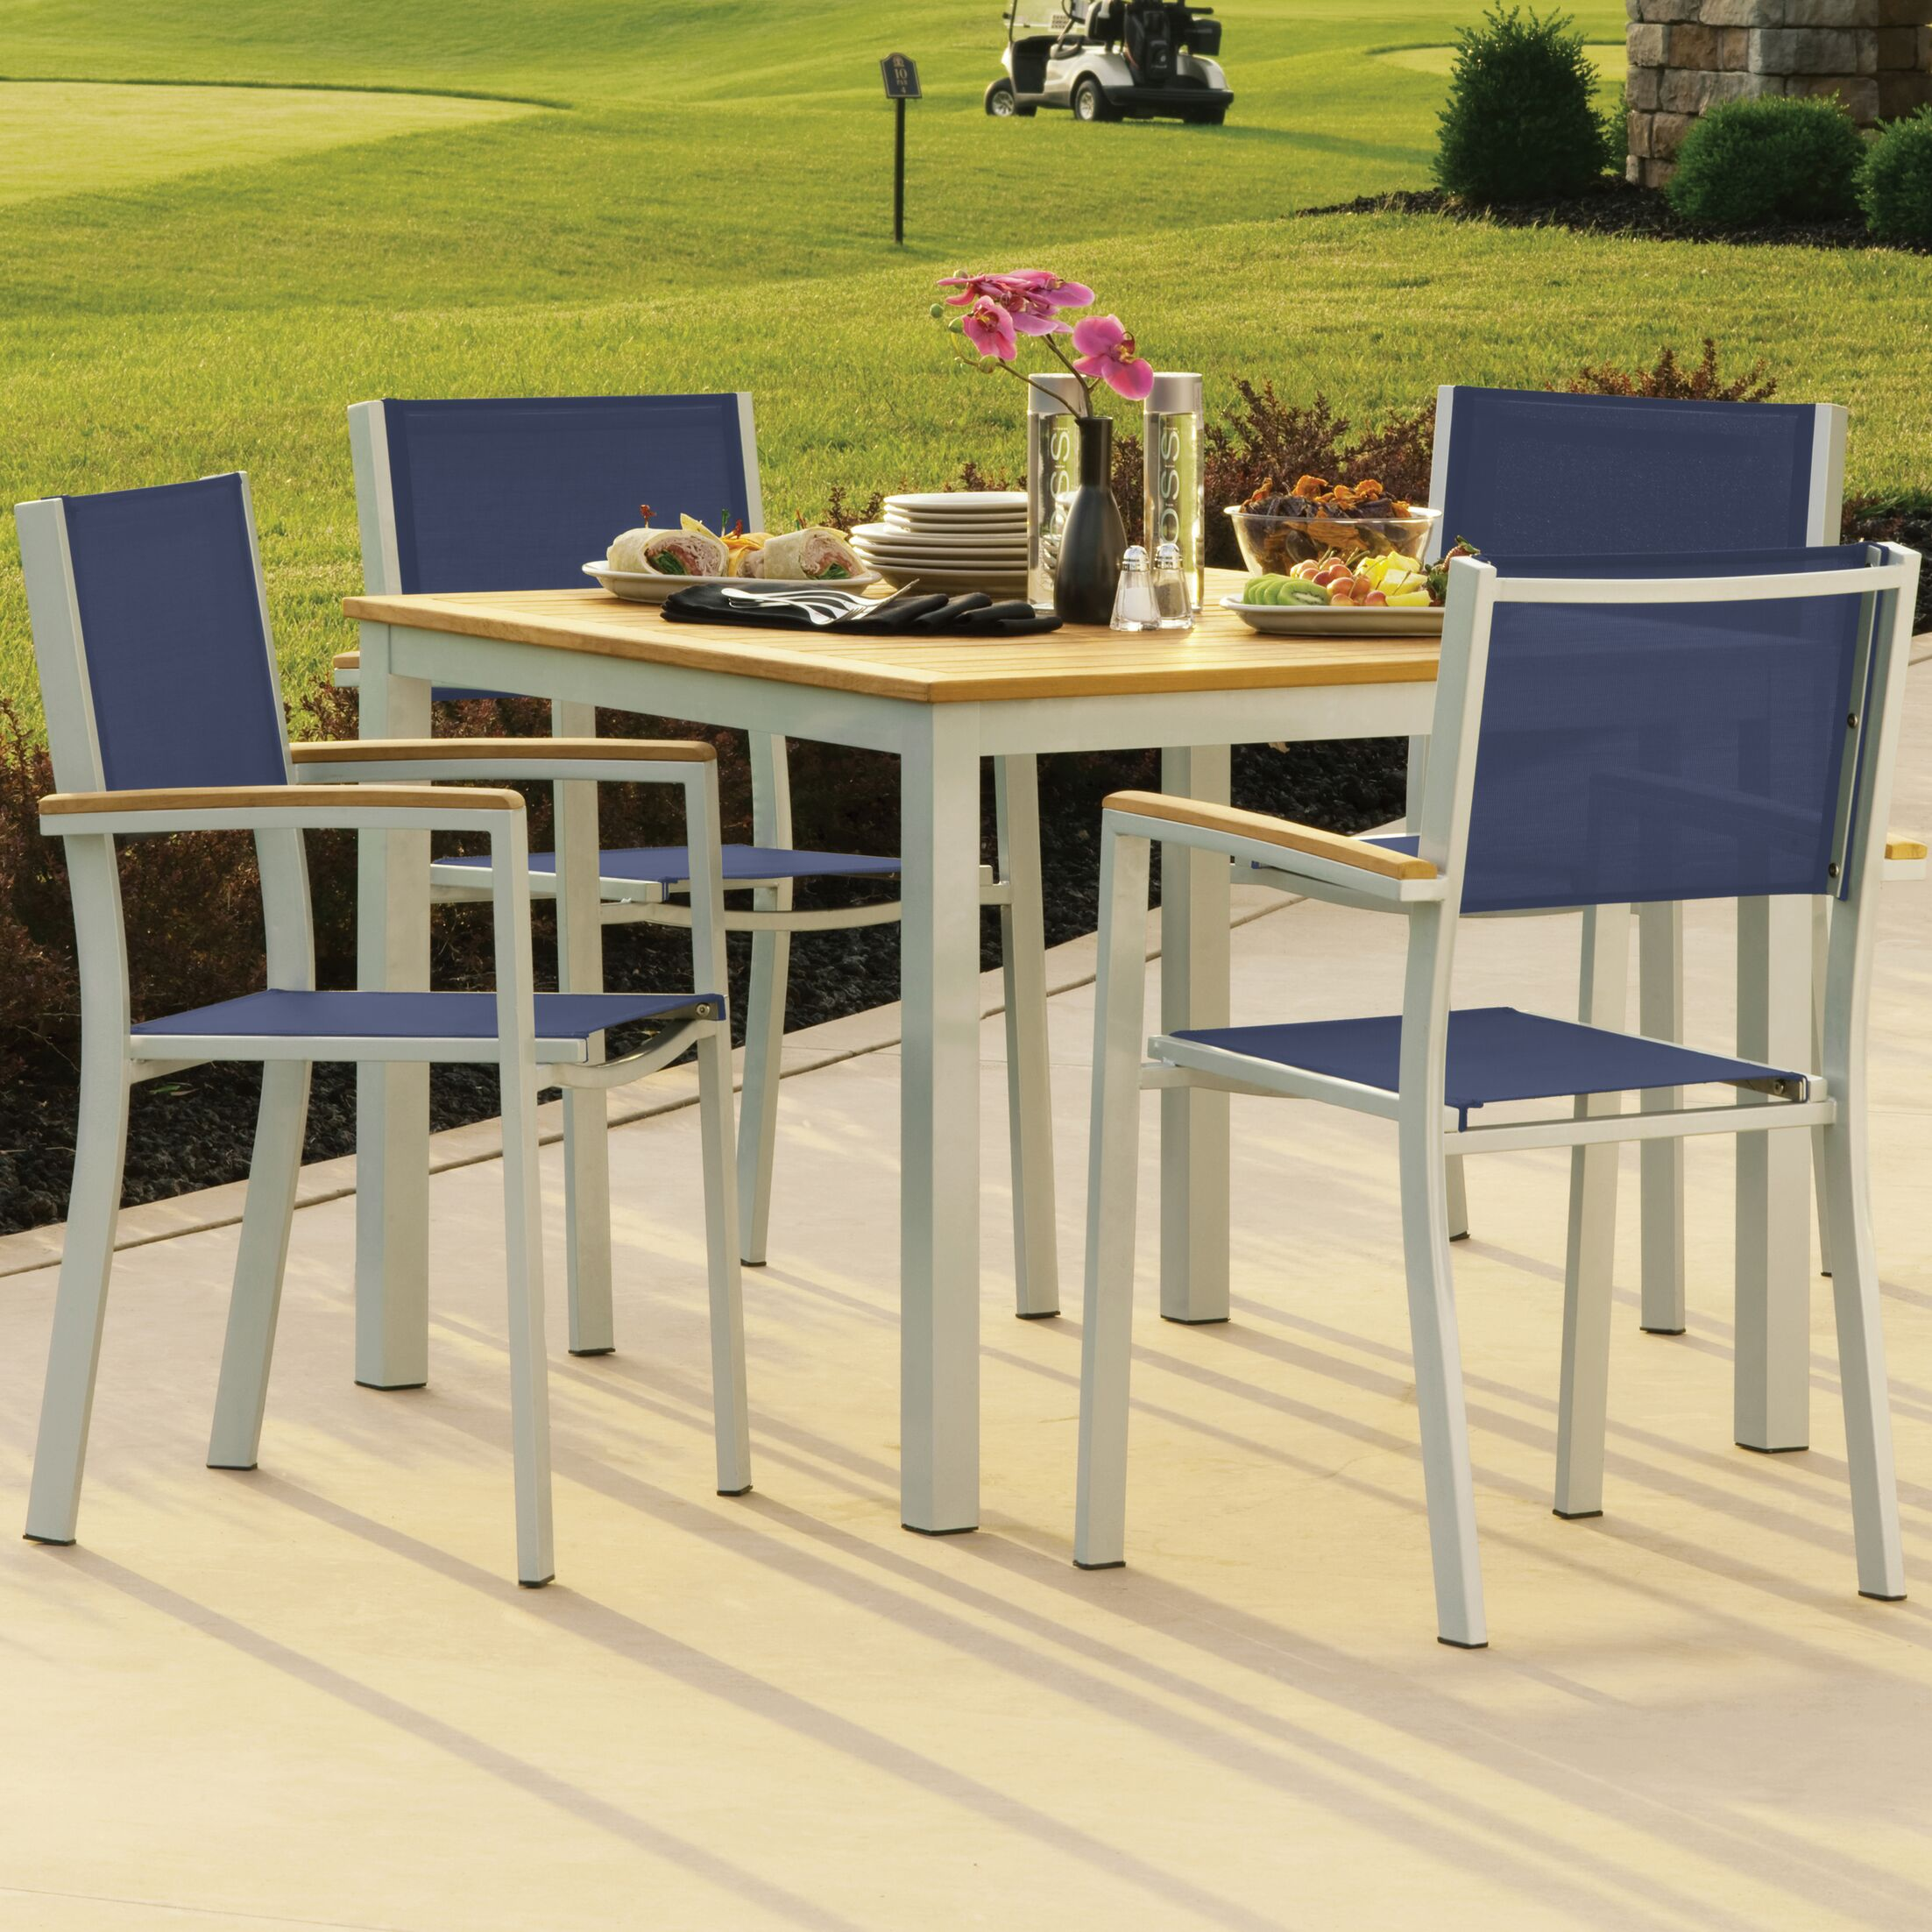 Farmington 5 Piece Dining Set With Ink Sling Back chairs Finish: Natural Tekwood